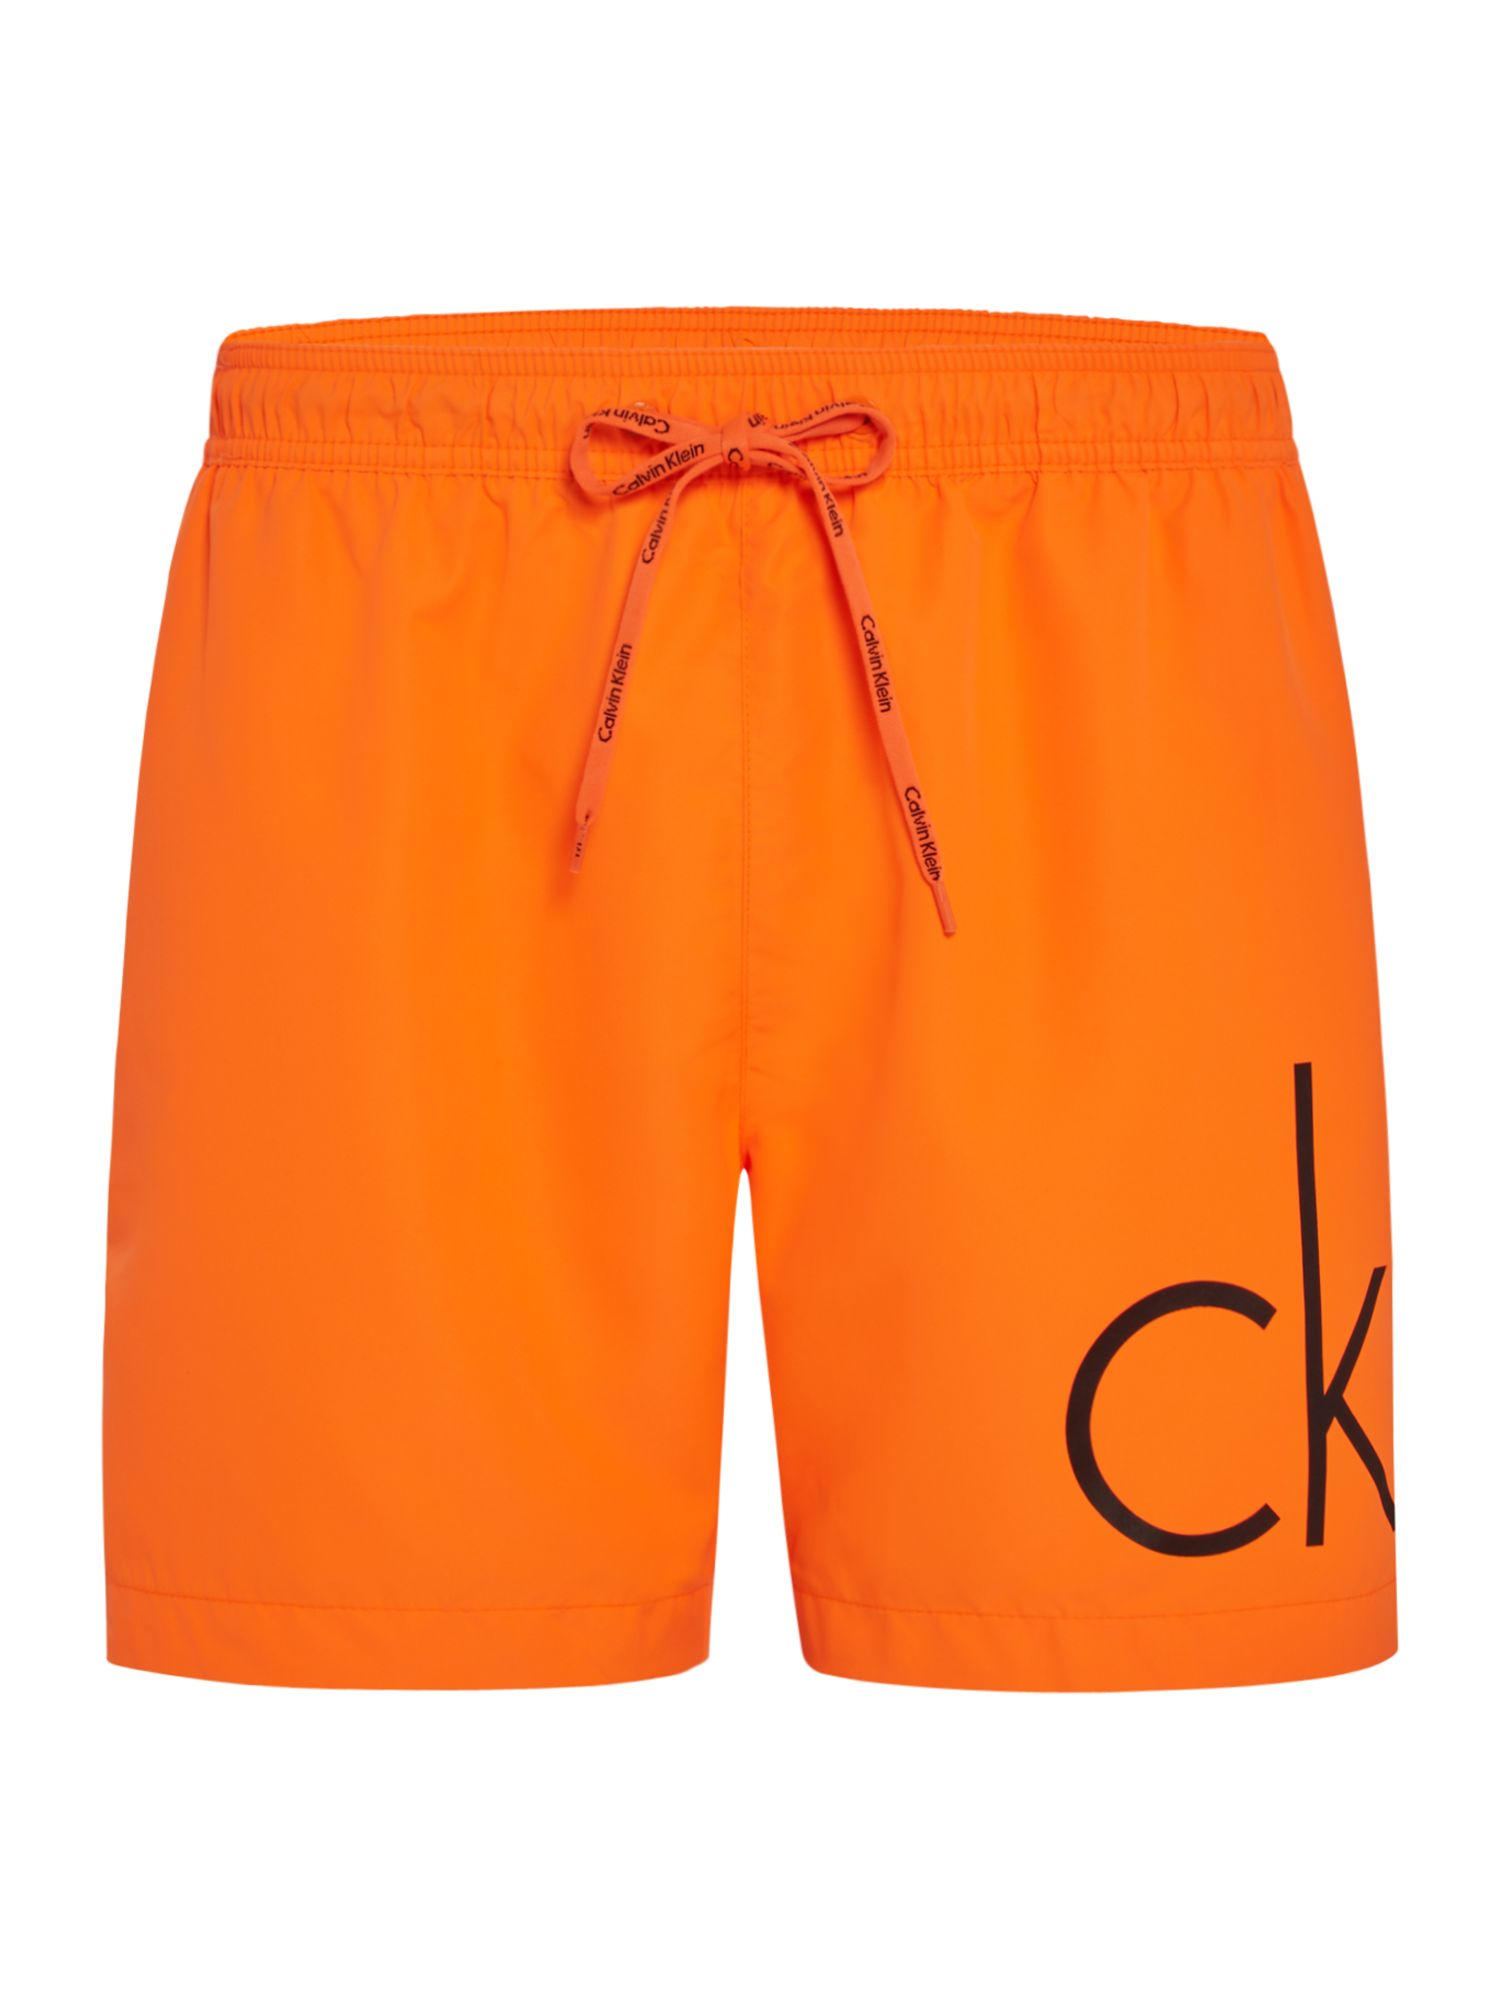 Men's Calvin Klein CK Logo Swim Short, Orange